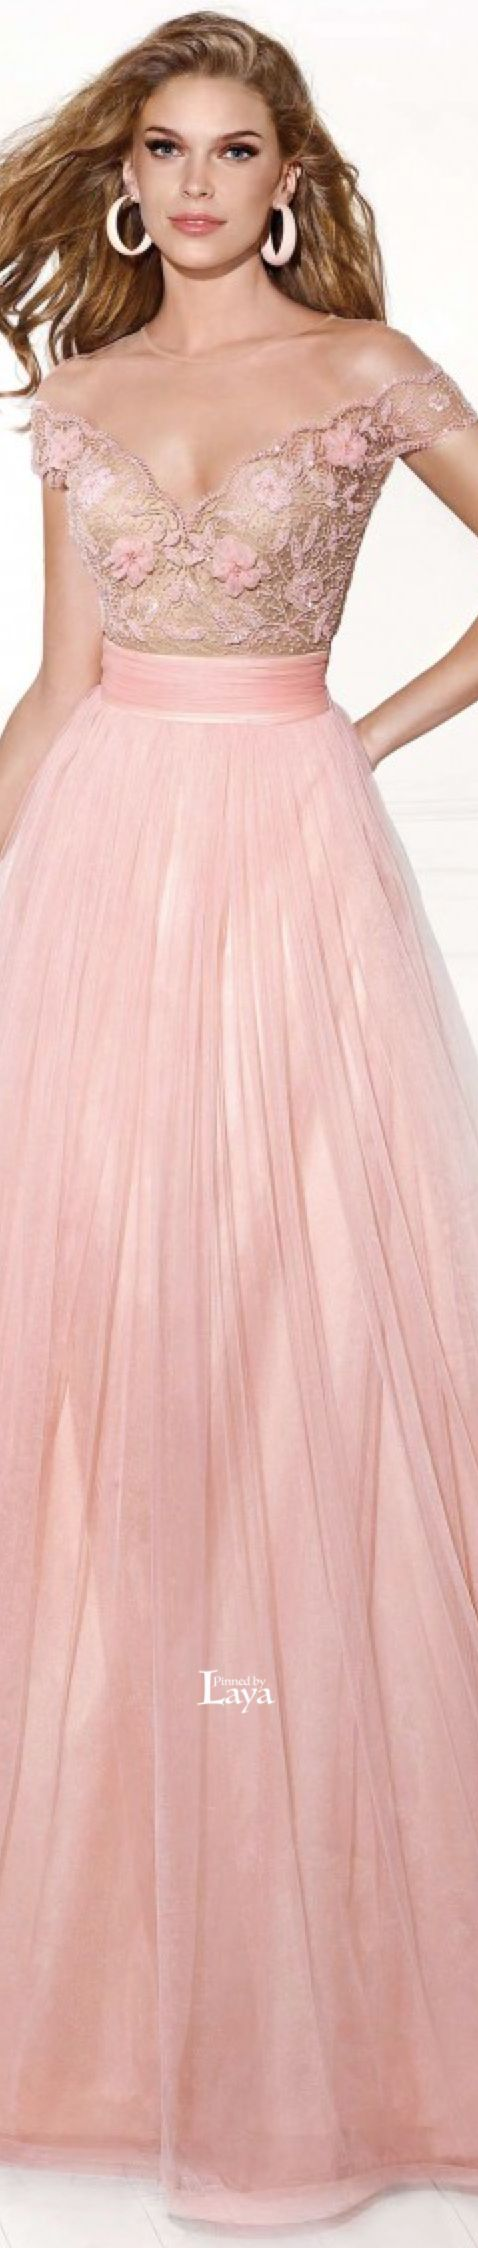 219 best Ballgowns images on Pinterest | High fashion, Dream dress ...